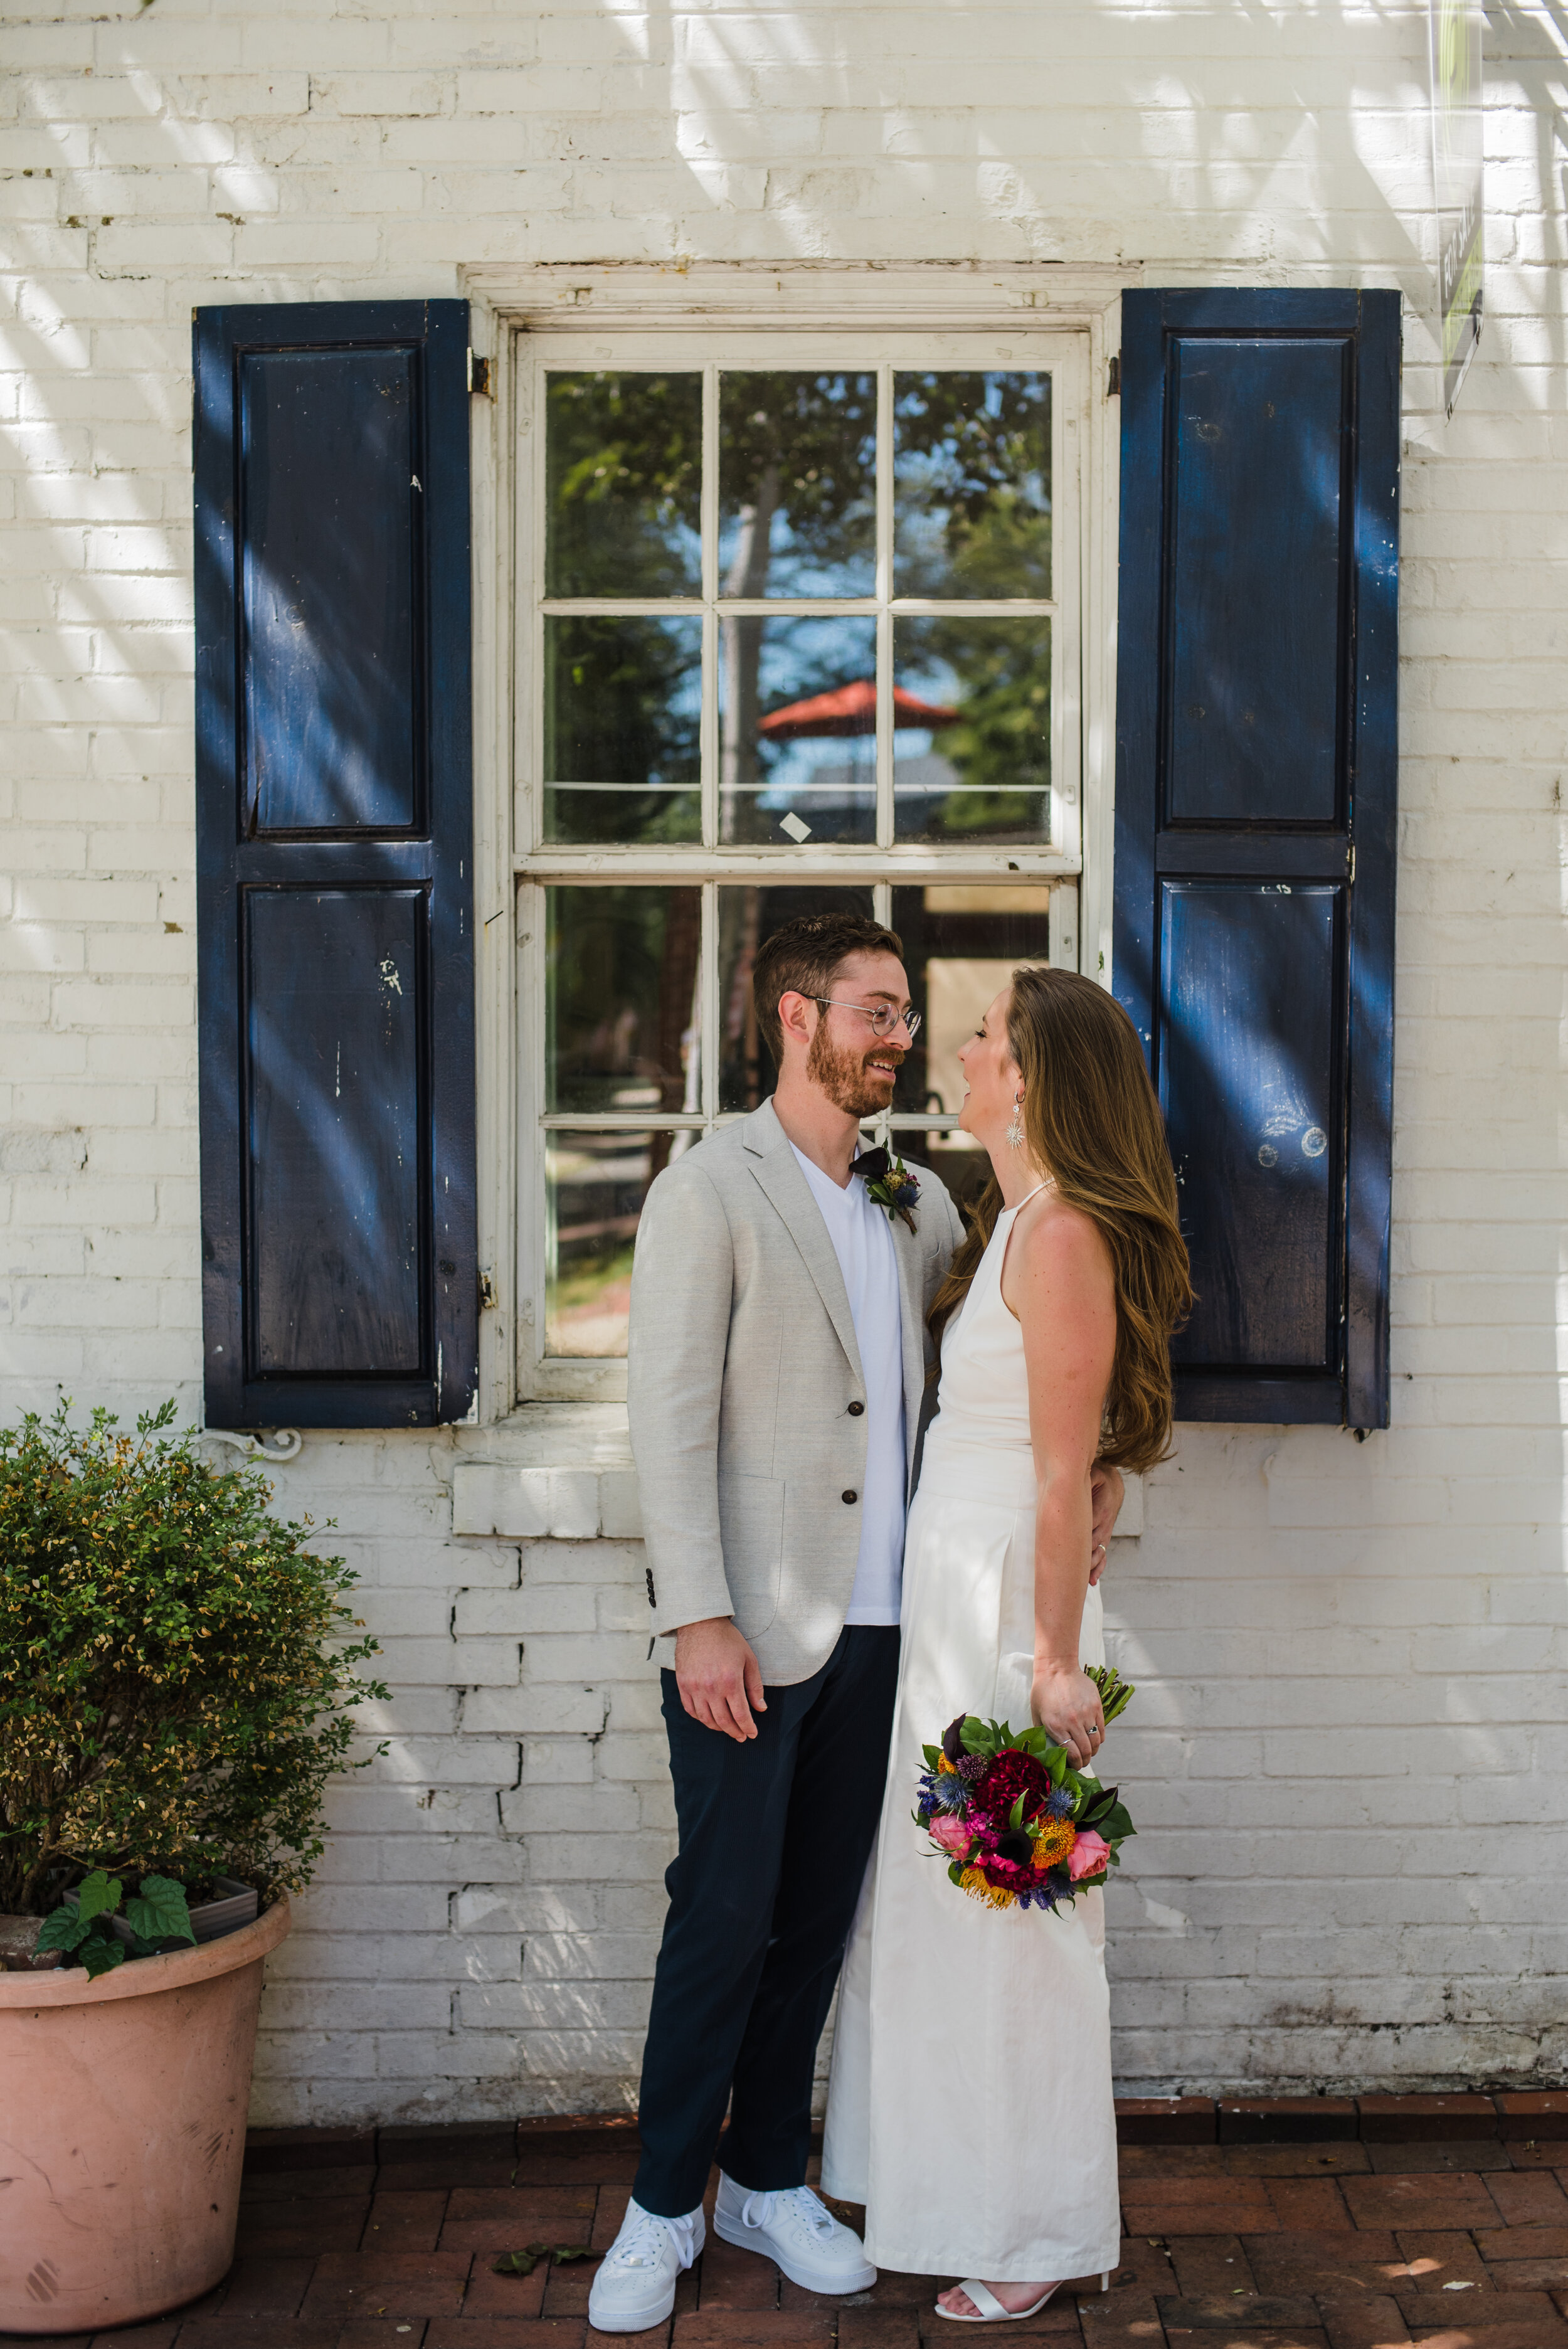 Wedding couple in front of a classic Philly home with blue shutters. The bride is wearing a white jumpsuit.